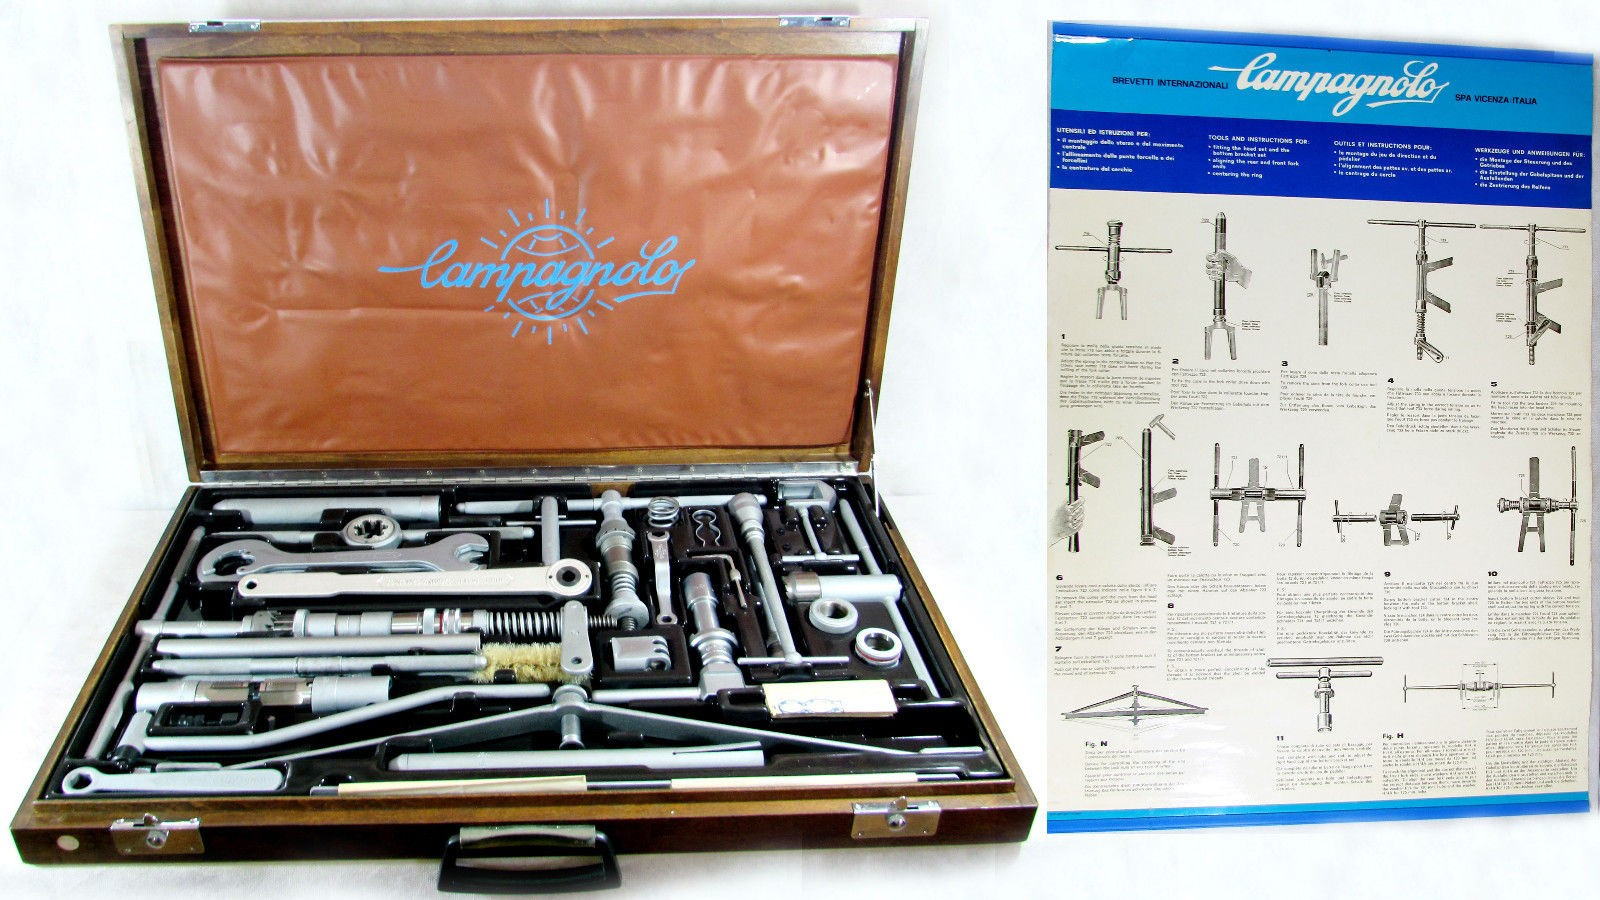 I love these Campagnolo tool kits